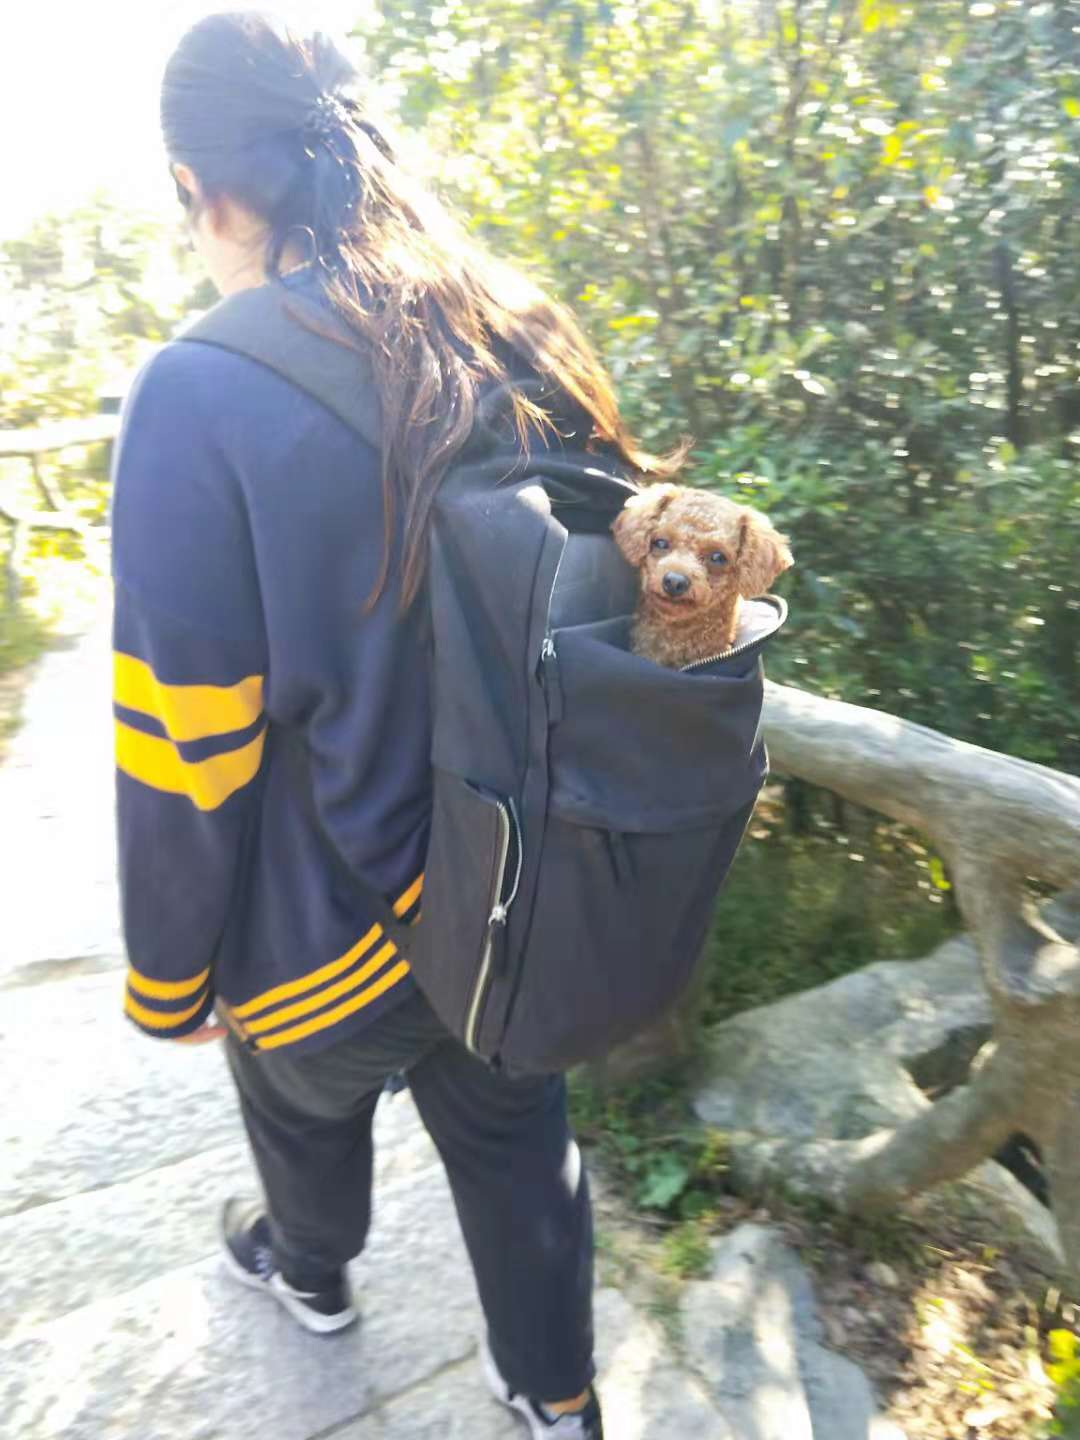 XY-GLBAL TEAM take a dog to climbing mountain